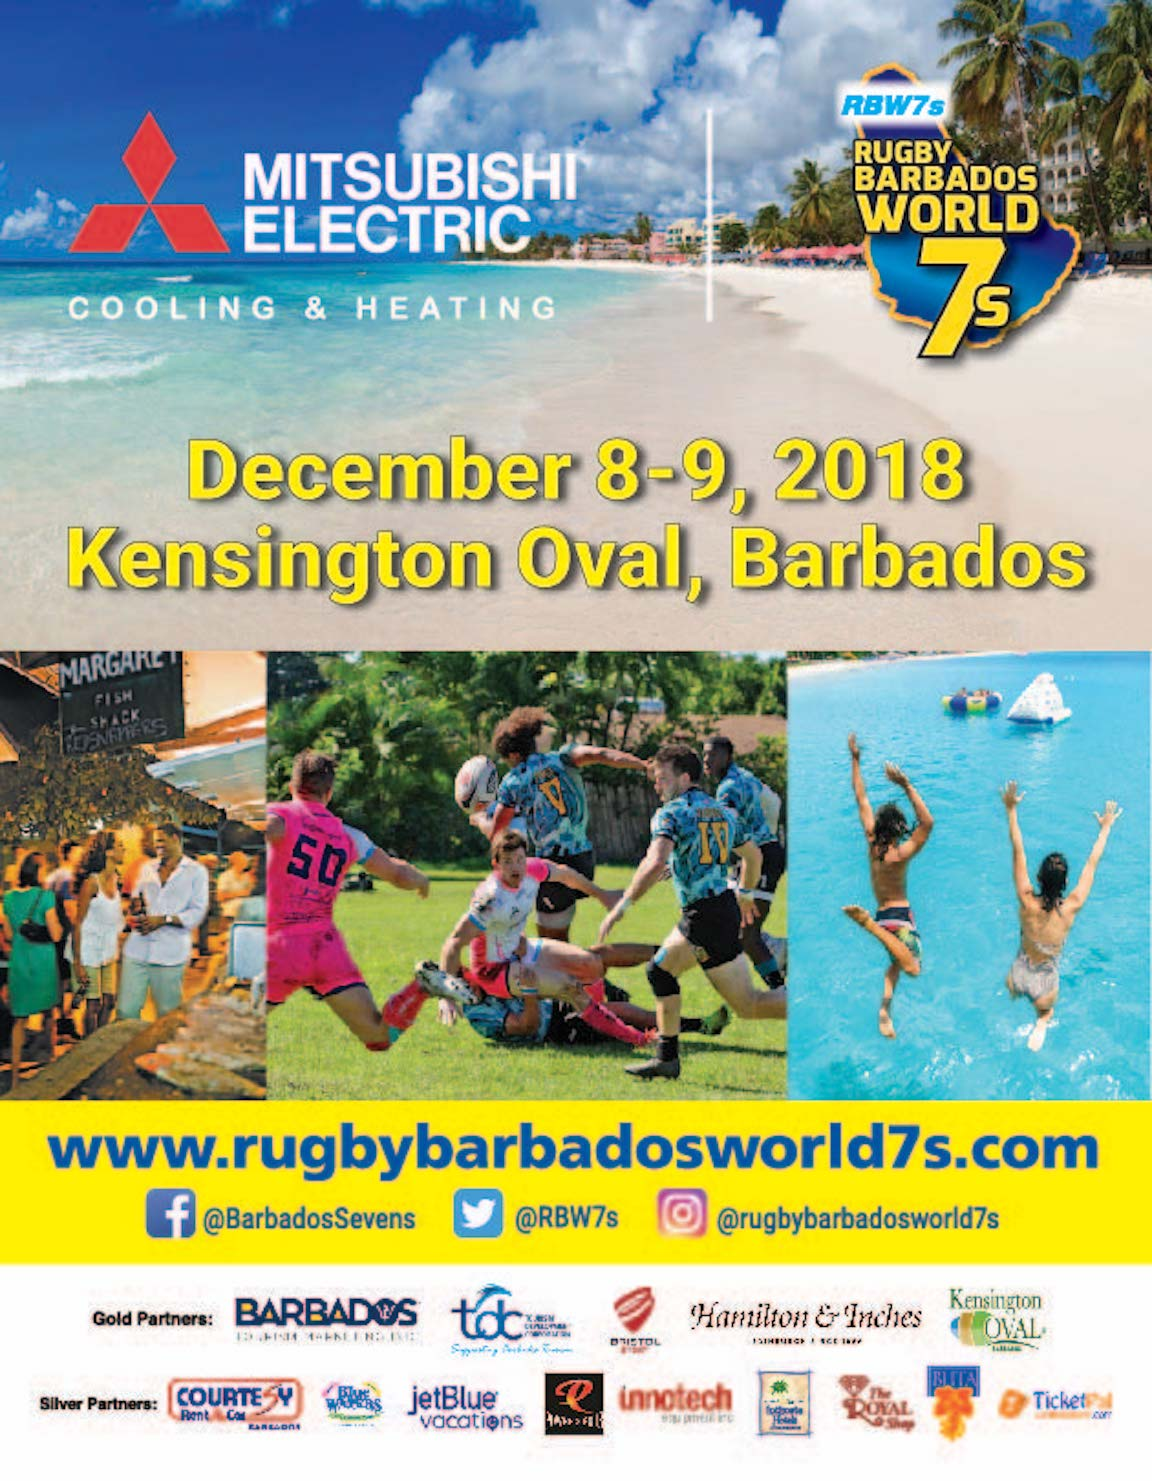 Mitsubishi Electric Rugby Barbados World 7s - Power X4 Party Stand - Day 2